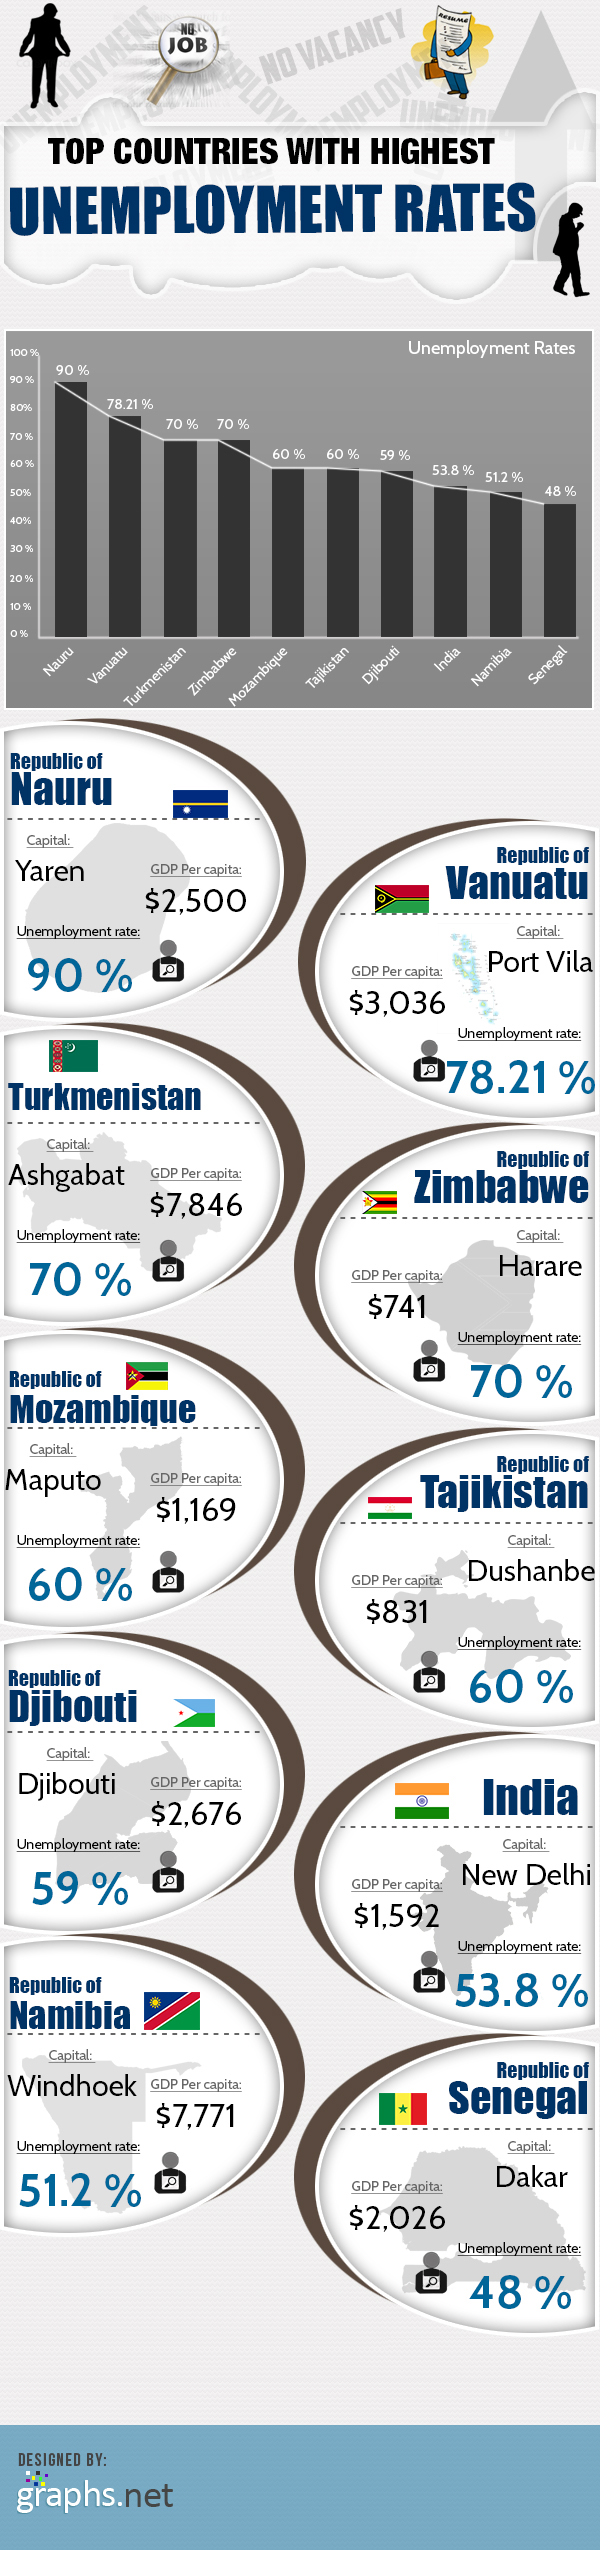 Top-Countries-with-Highest-Unemployment-Rates